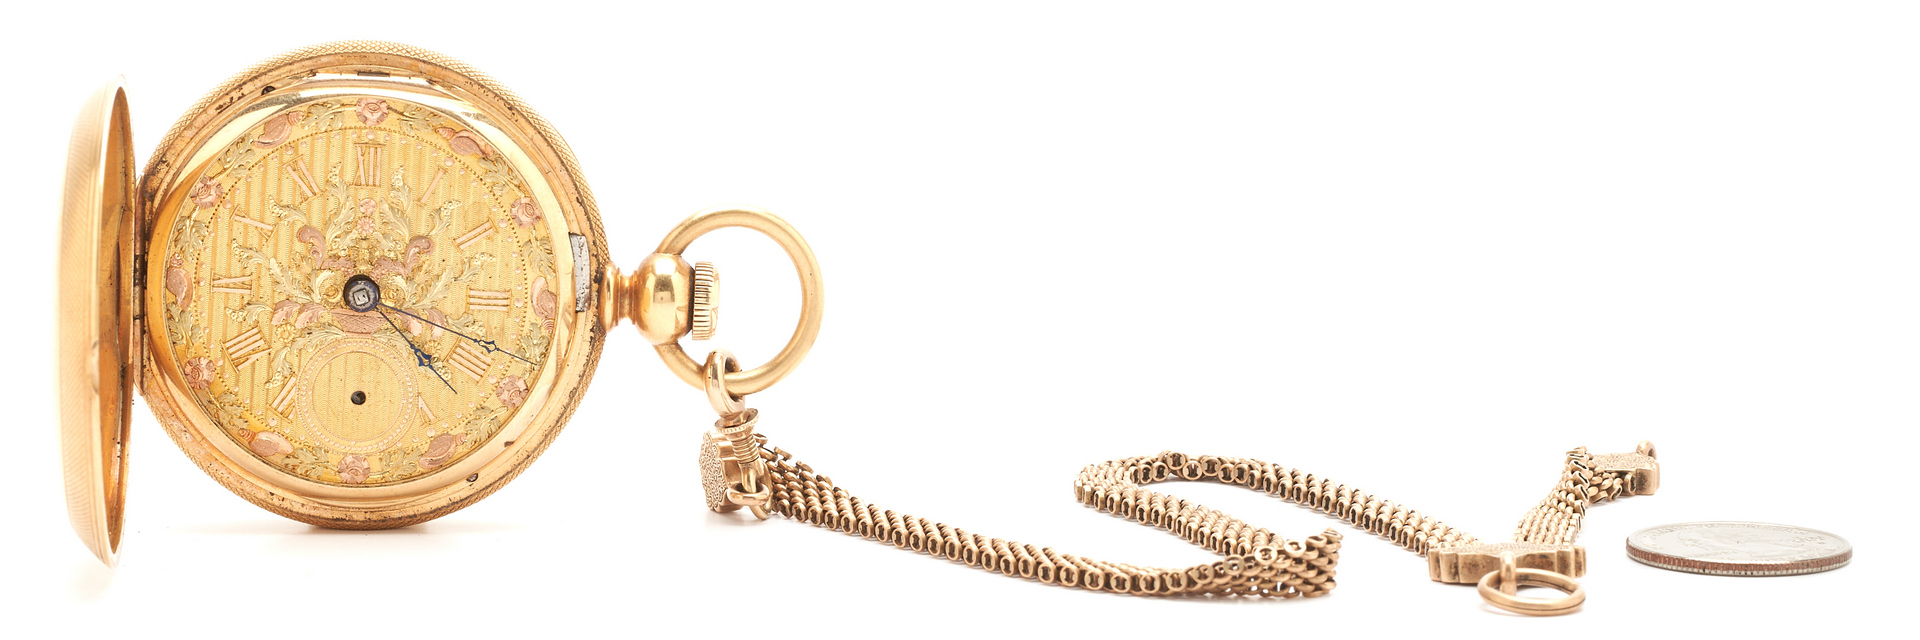 Lot 55: English Fusee Pocket Watch, 18K Gold Case